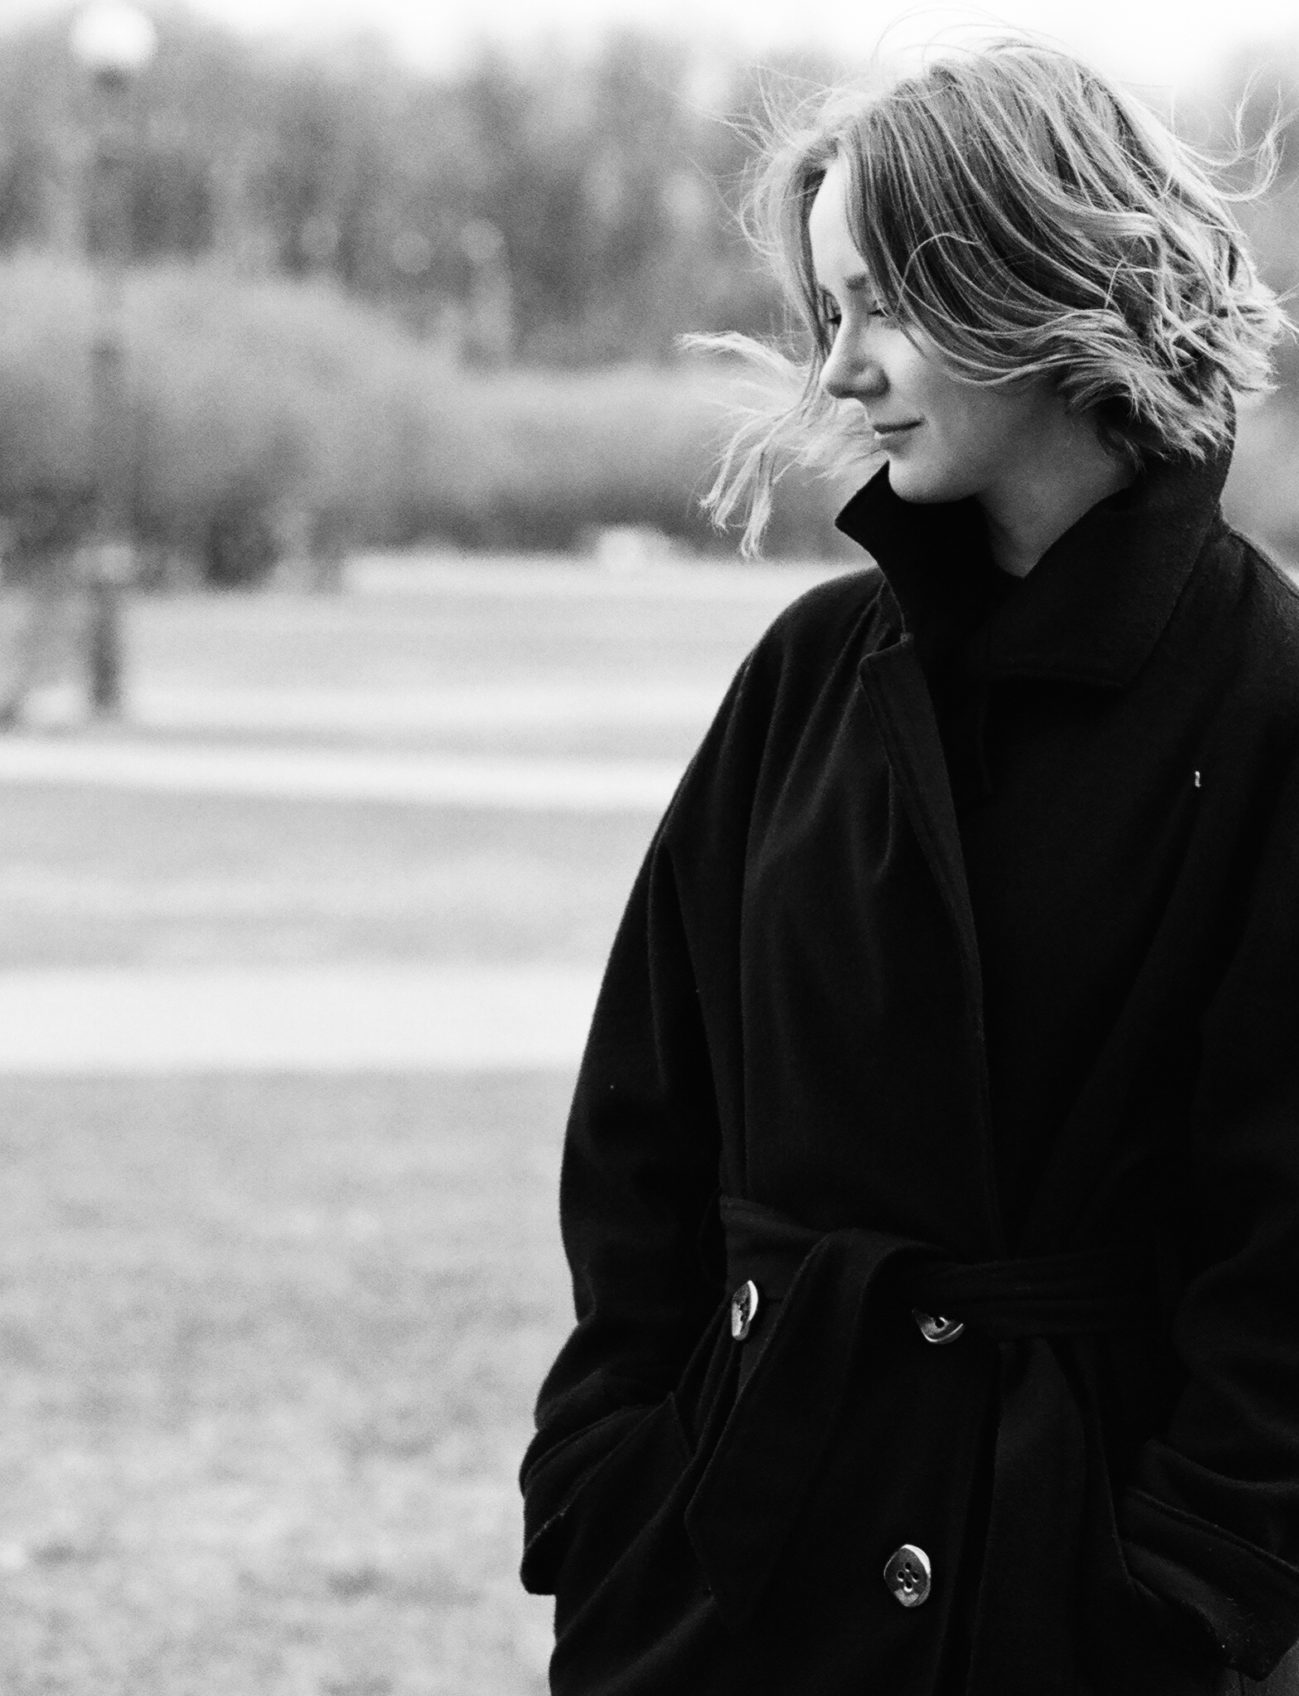 Woman in black-and-white standing outdoors wearing a coat